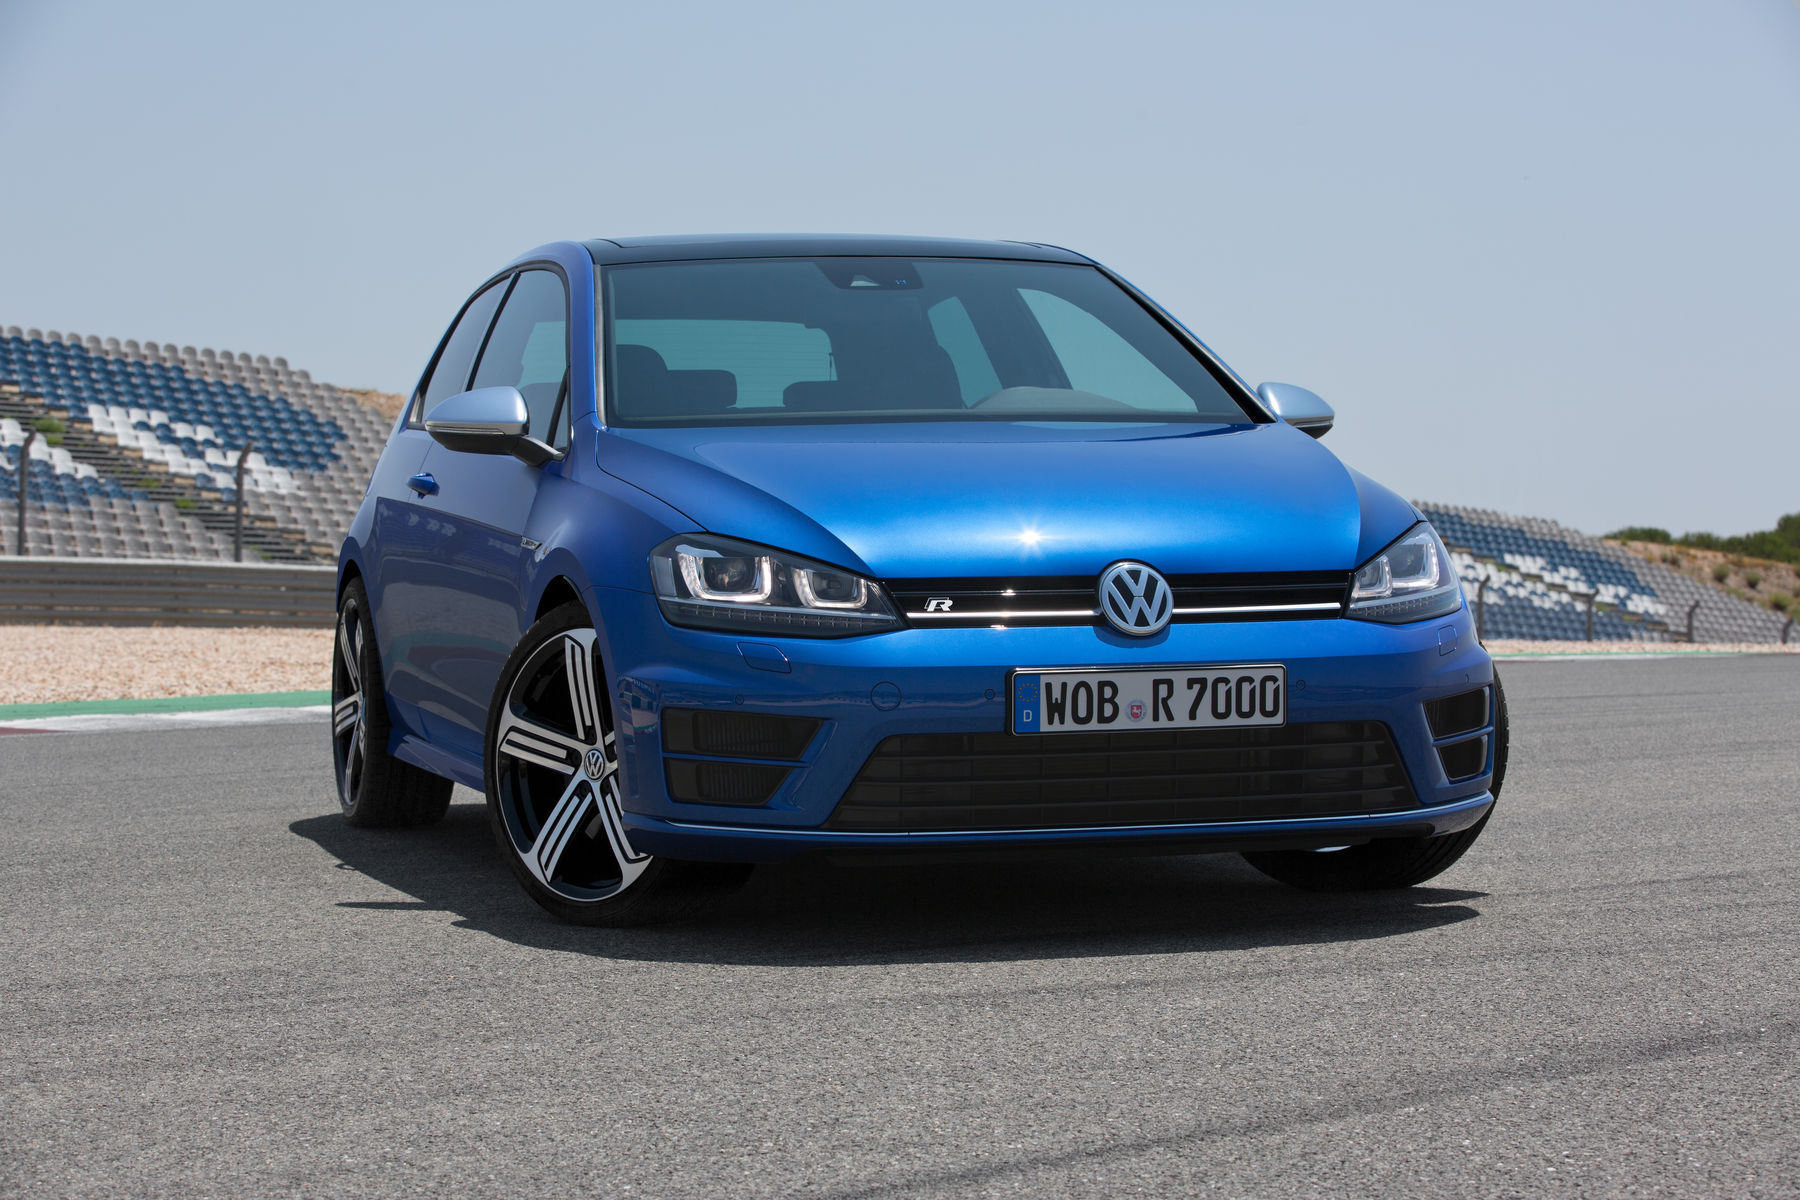 2015 Volkswagen Golf R | The '15 VW Golf R